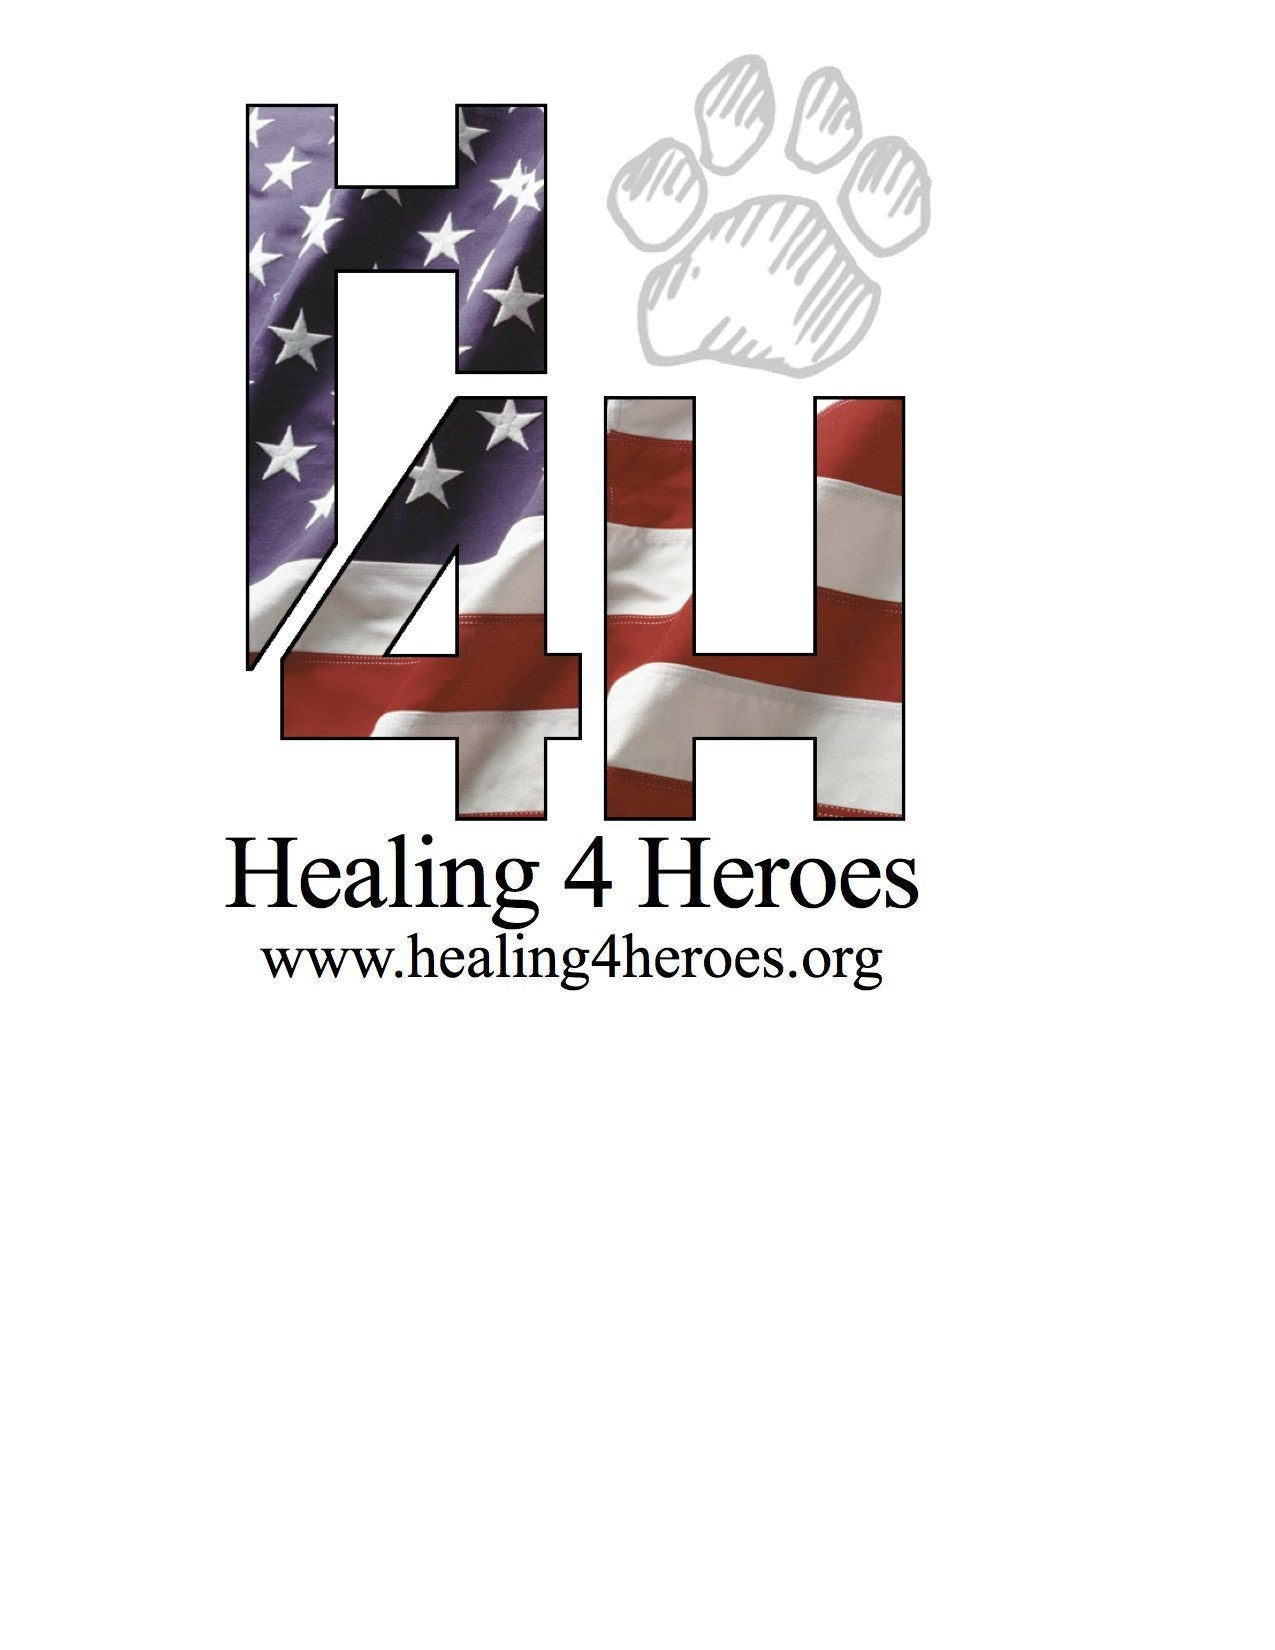 Healing 4 Heroes Service Dogs for Veterans with PTSD